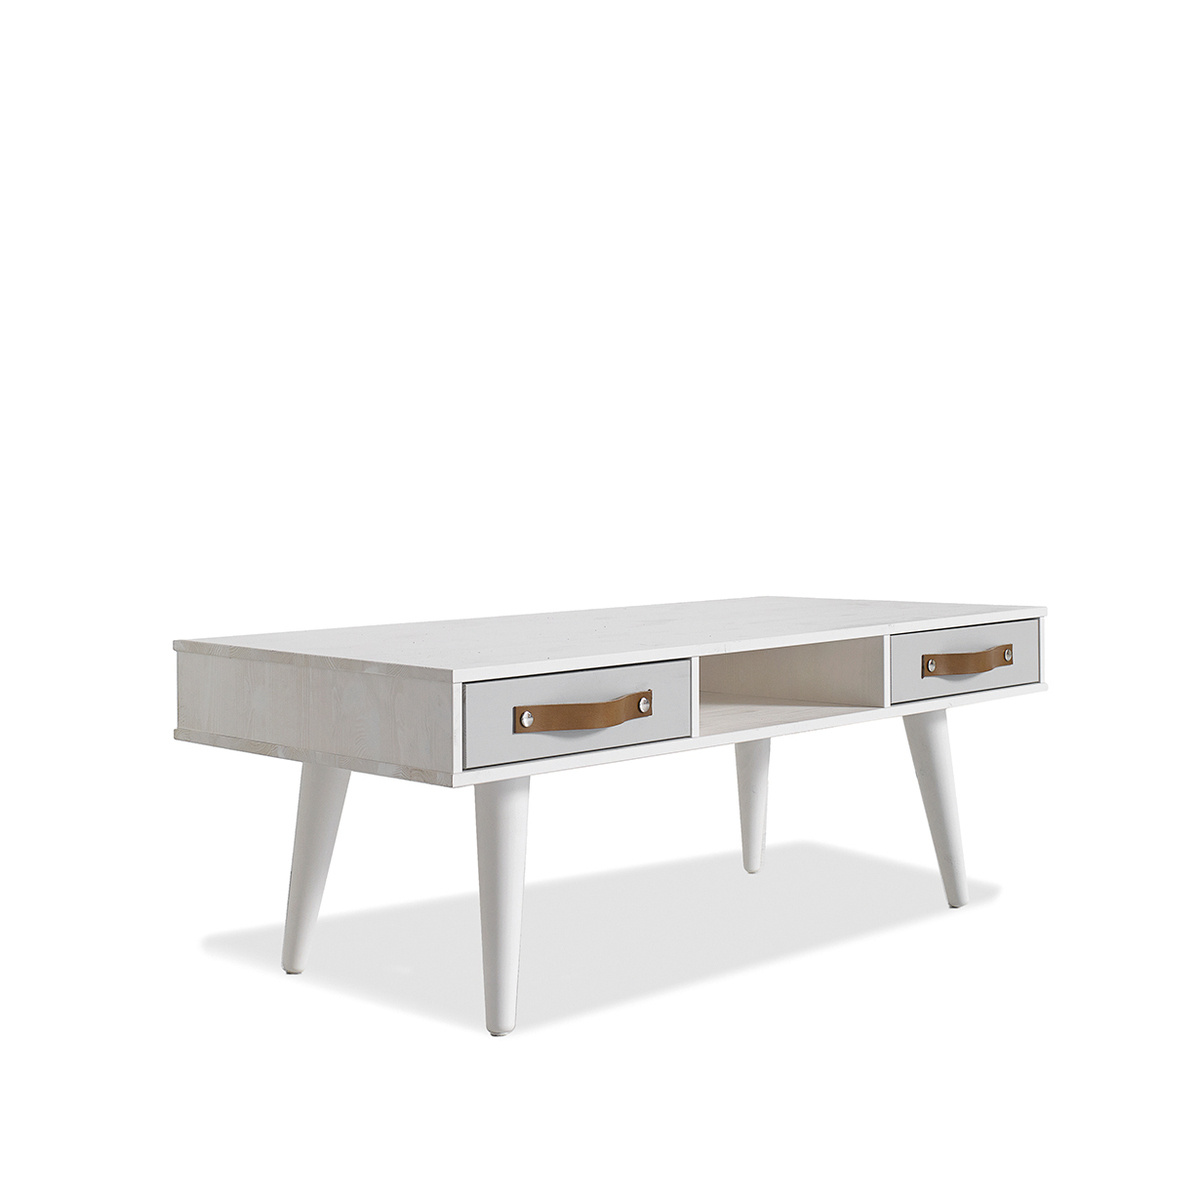 2 tiroirs pour table basse dance by karup lovethesign for Table pour 2